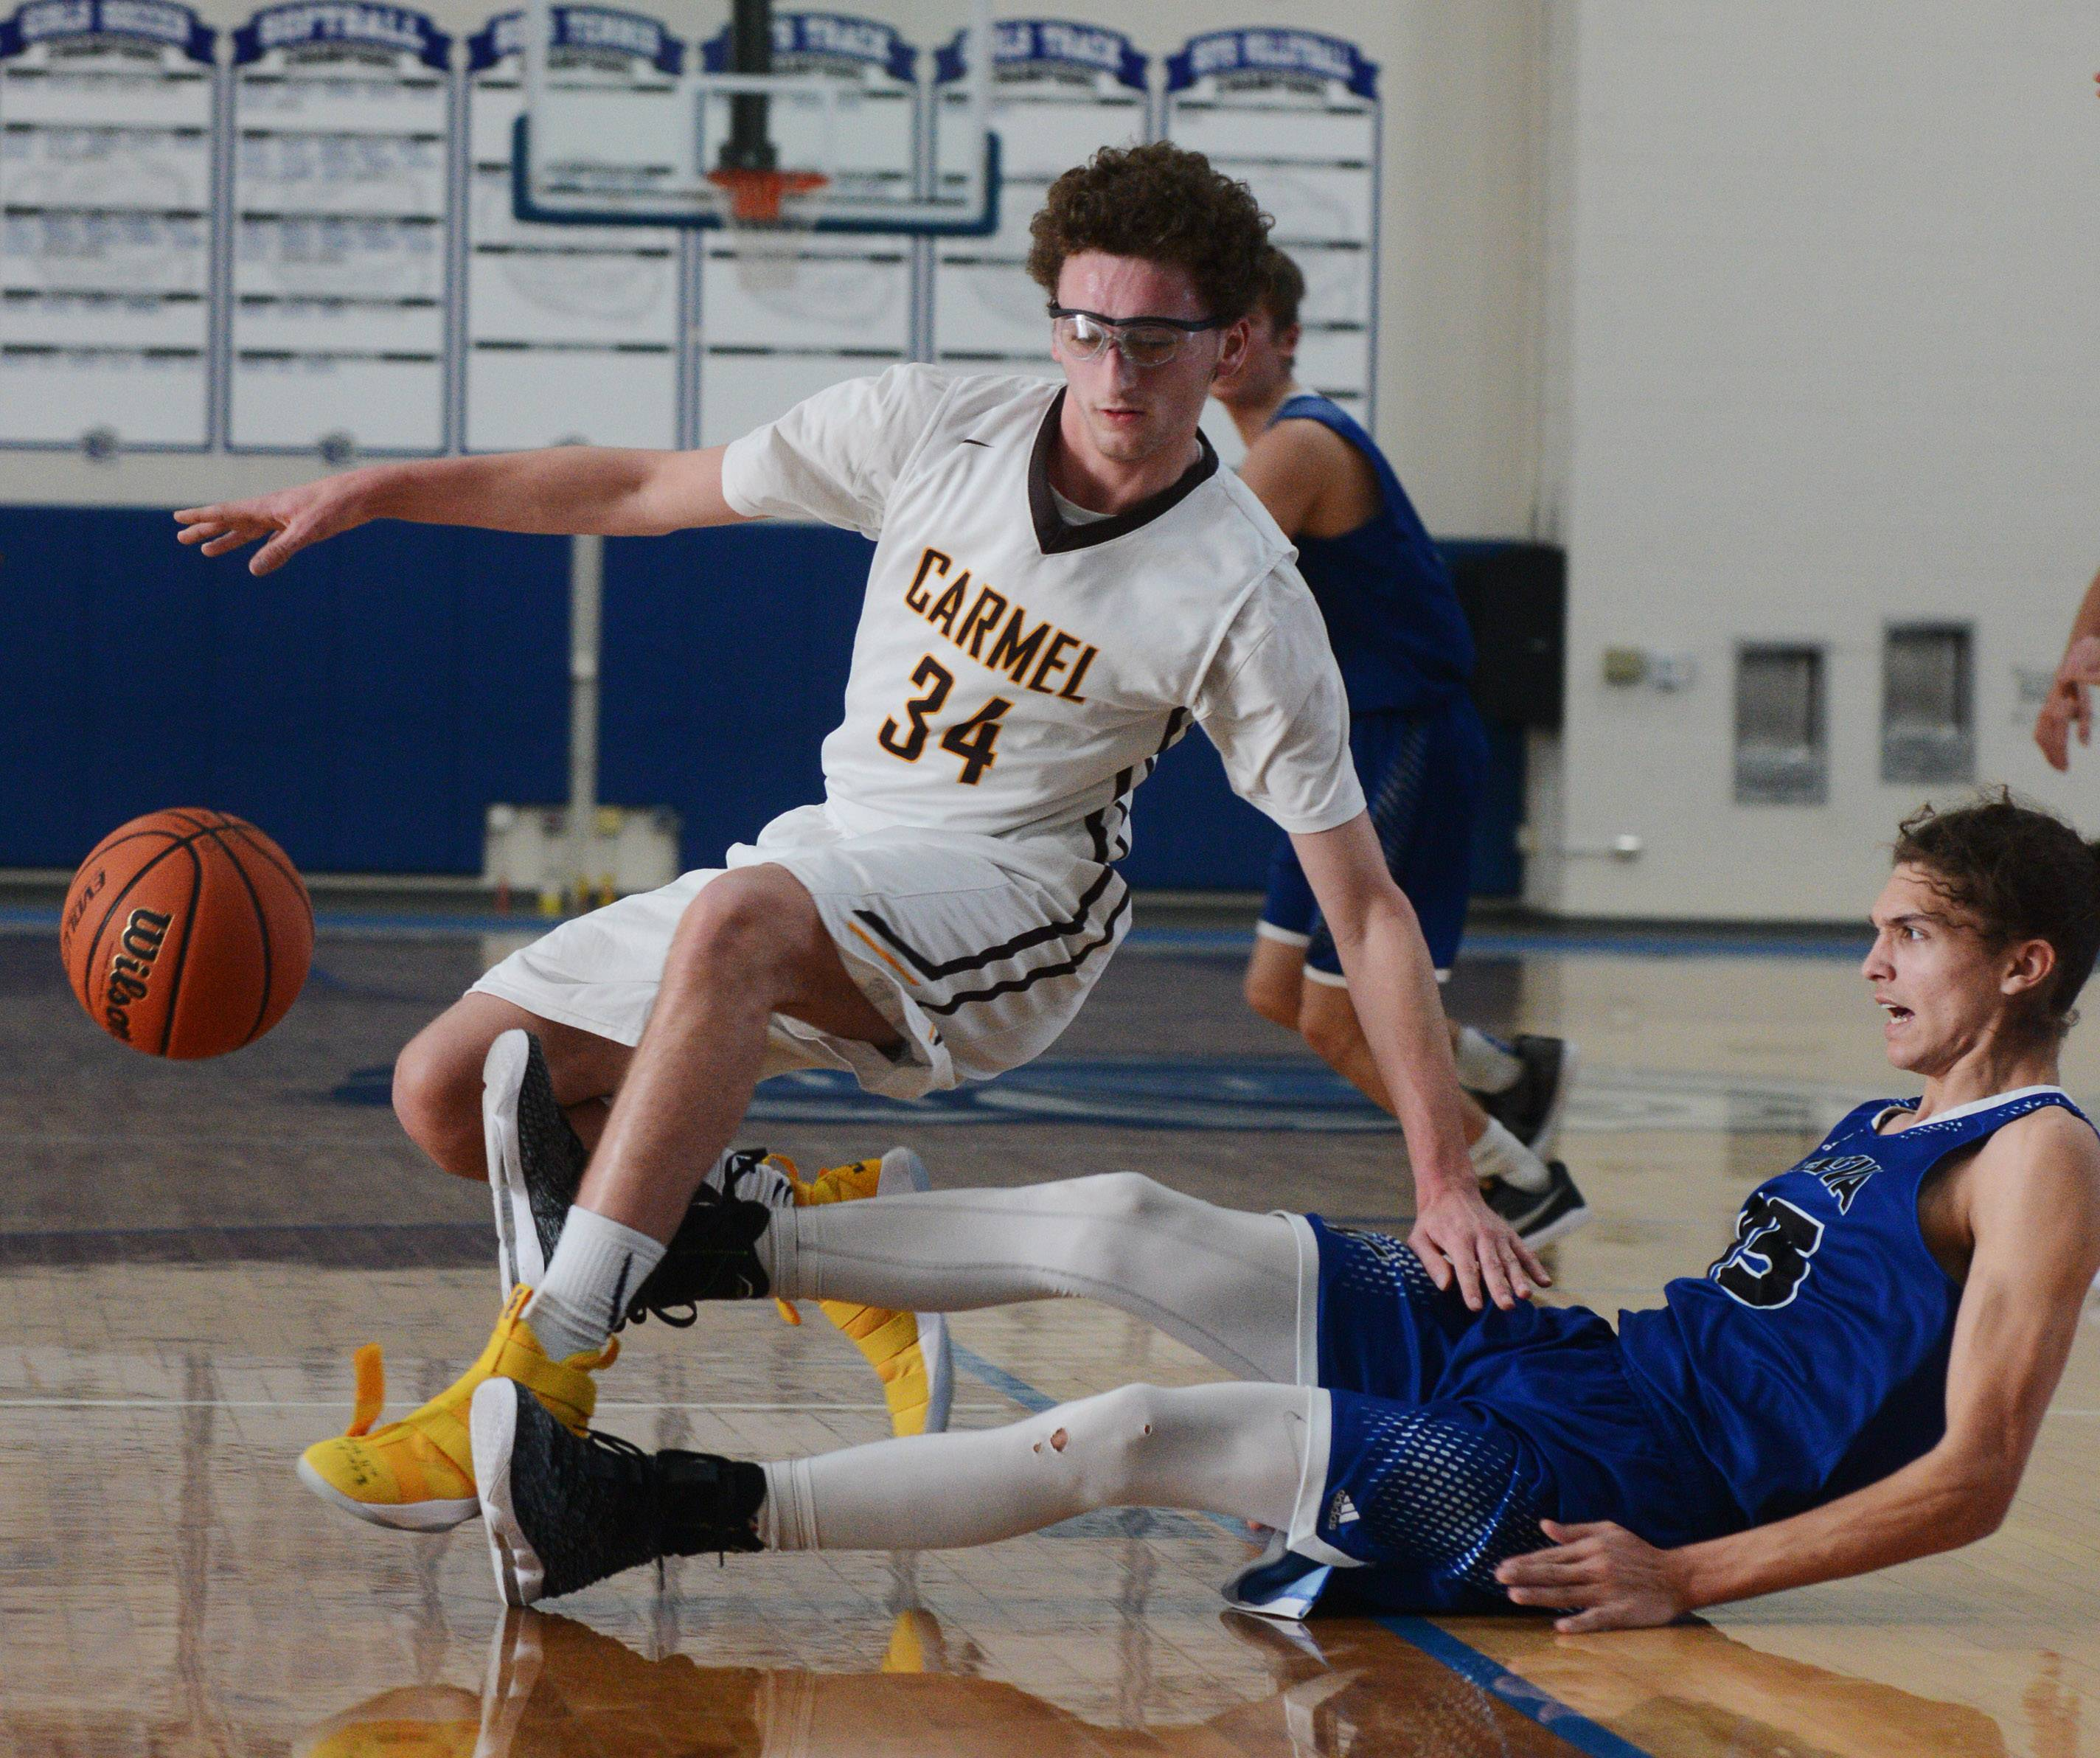 Carmel's Jonathan Roeser, left, is called for charging on a move to the basket against Geneva's Kross Garth during the Lake Zurich Martin Luther King Classic on Saturday.